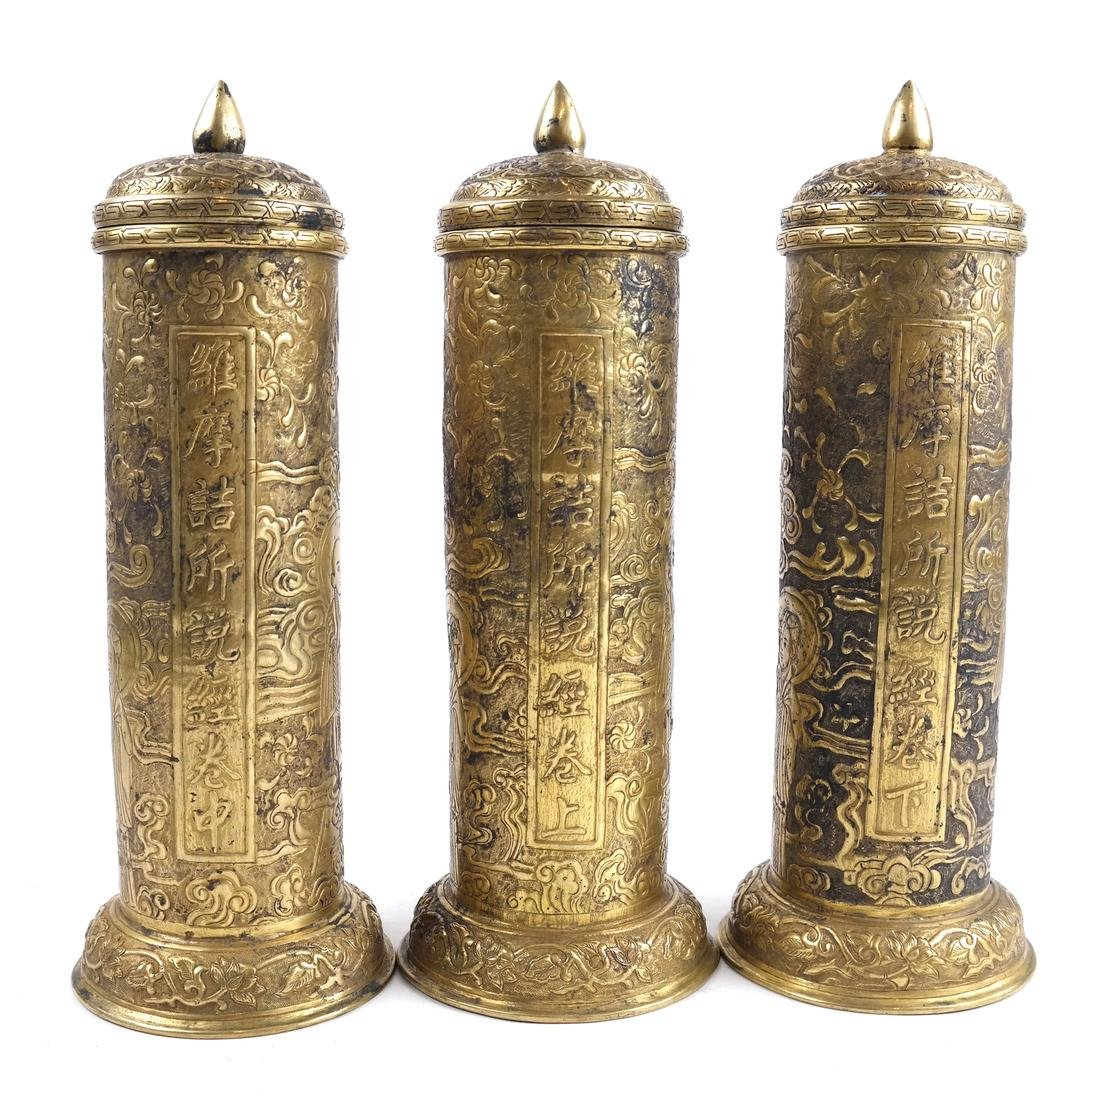 3 SOUTHEAST ASIAN METAL CYLINDRICAL SUTRA HOLDERS